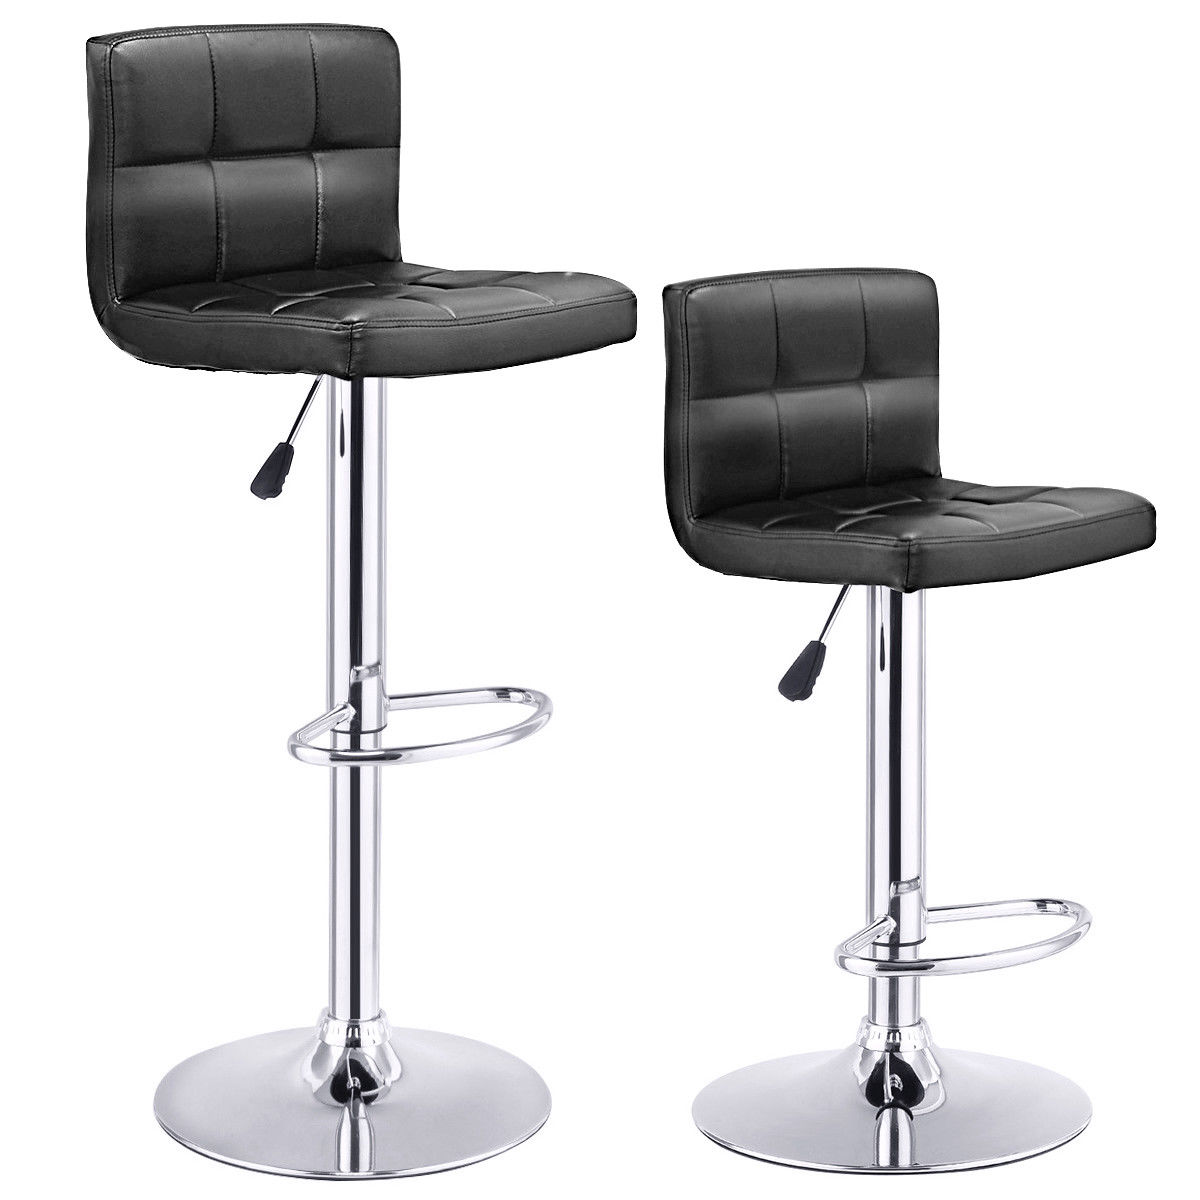 Costway Set Of 2 Bar Stools PU Leather Adjustable Bar Stool Swivel Pub Chairs Black by Costway